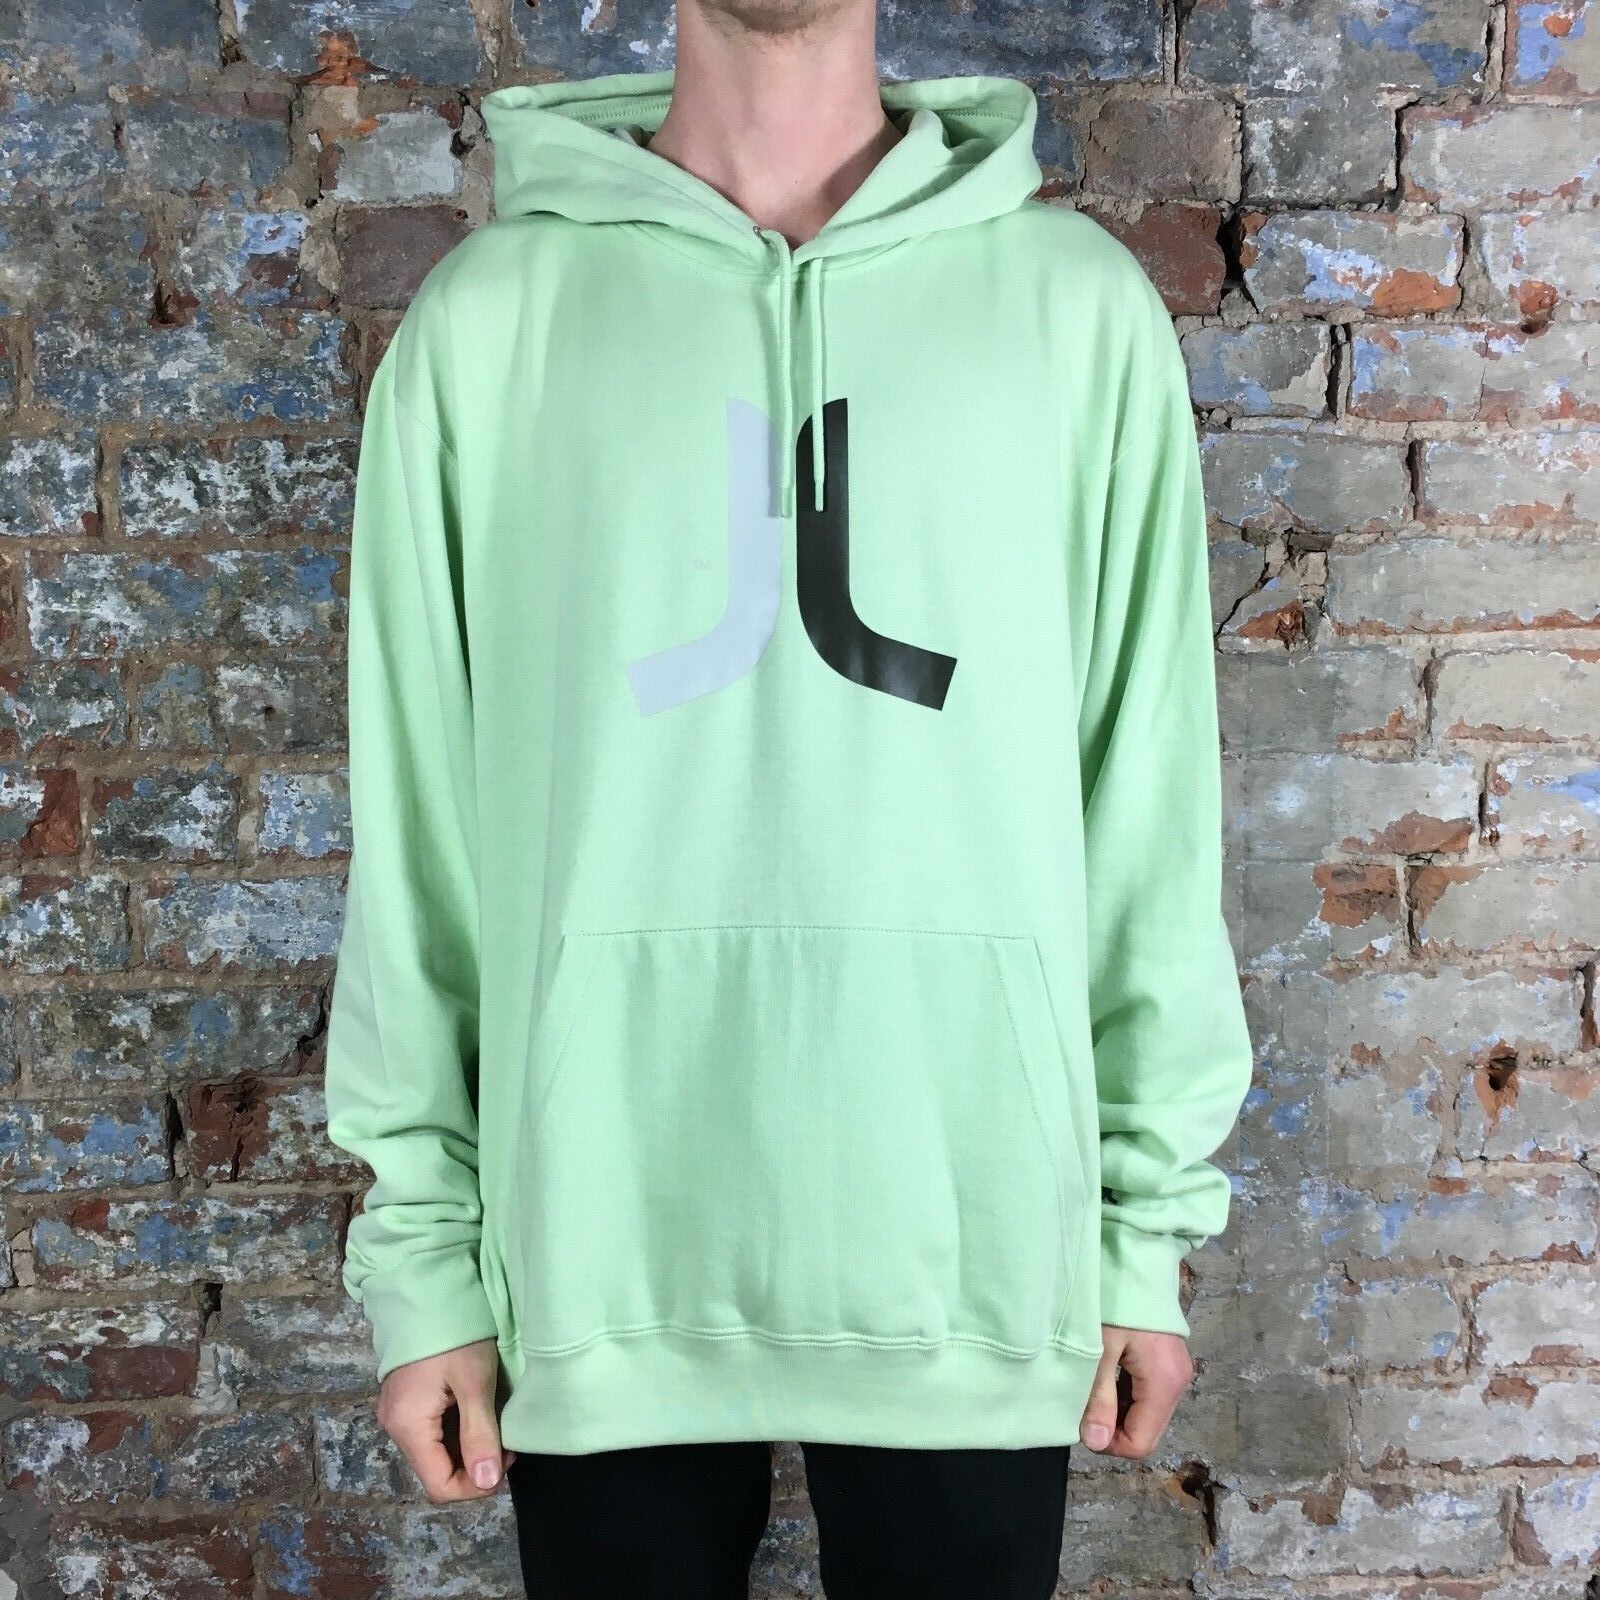 0526bc03 Details about WESC Icon Sweatshirt Pullover Hoodie Brand New - Lime Size:  L,XL